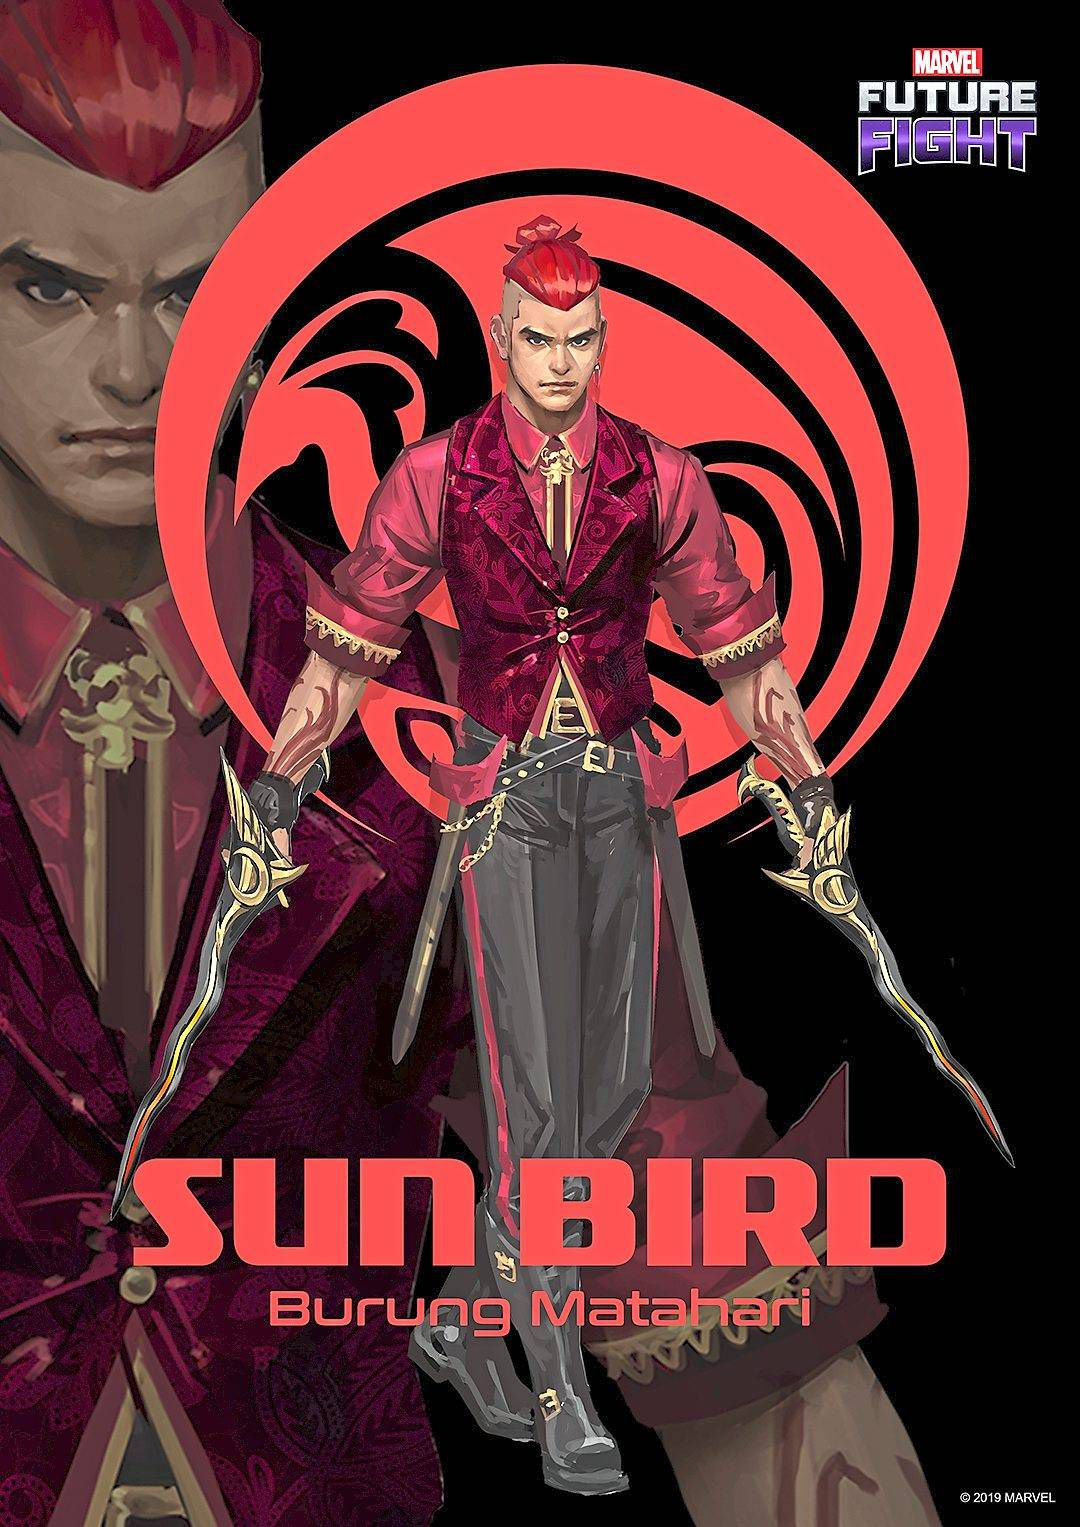 Sun Bird will be available as a playable character on mobile game Future Fight at a later date. — Marvel